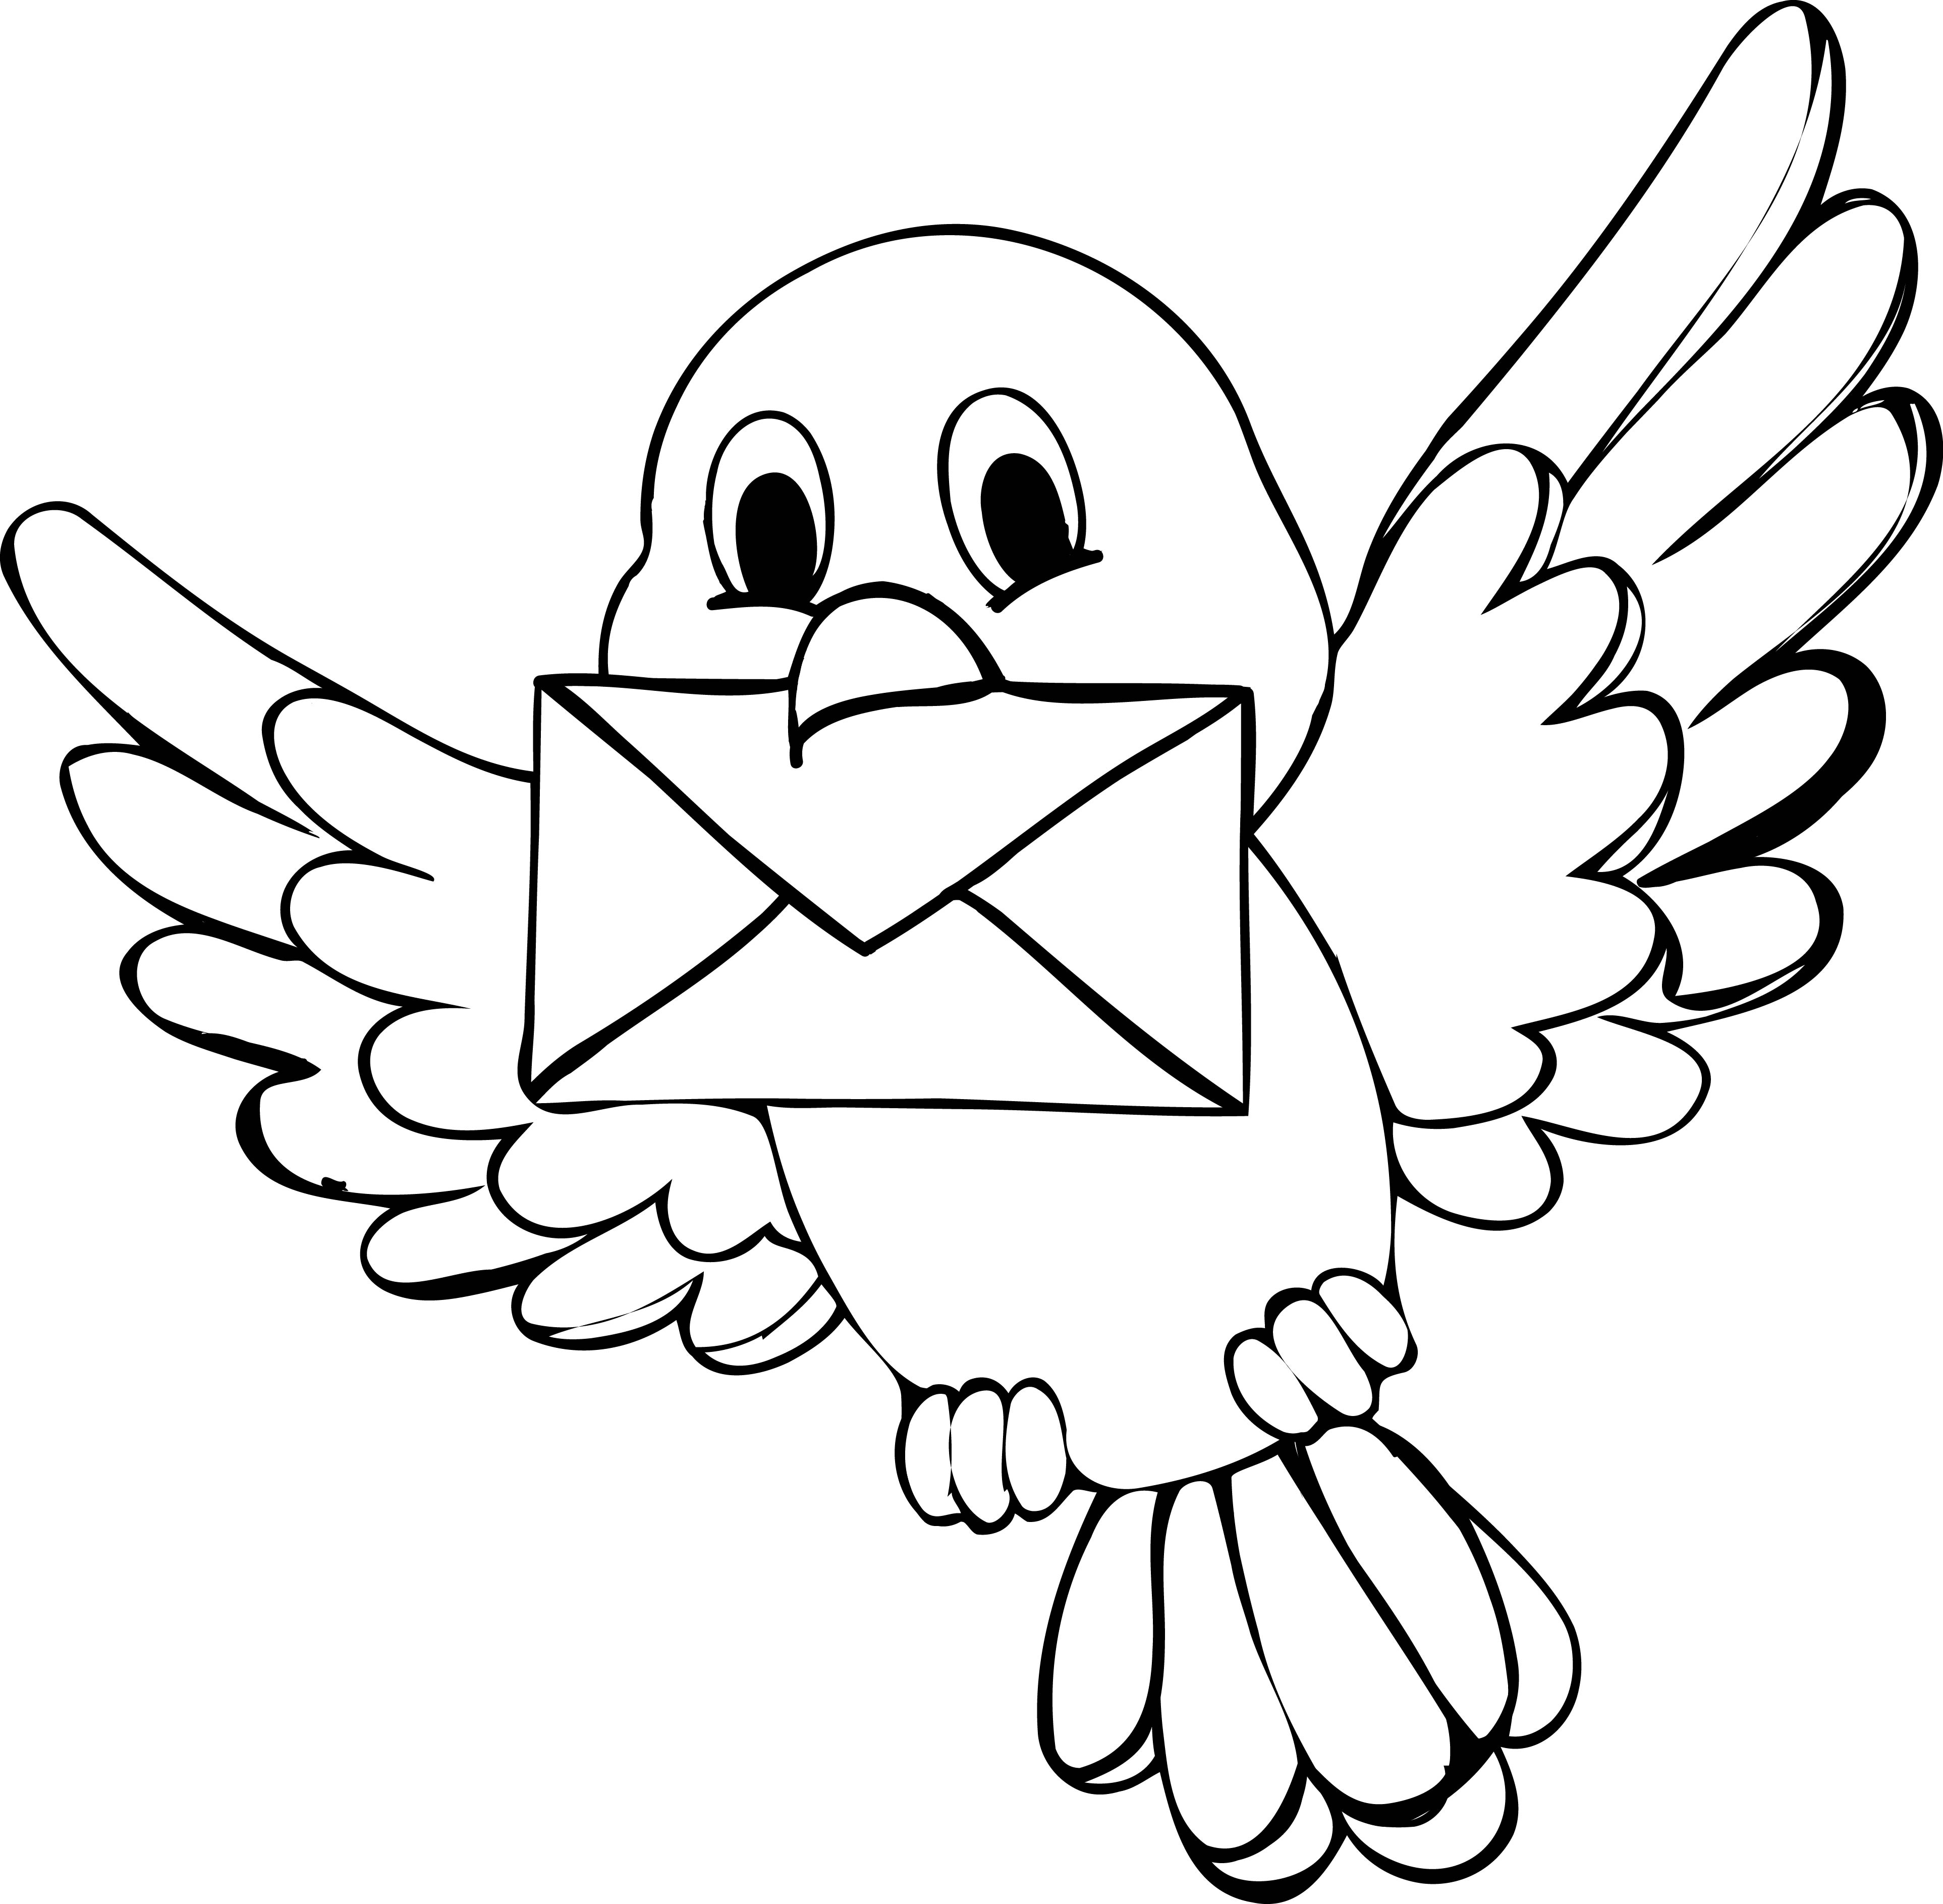 3851x3773 Cute Bird Coloring Page